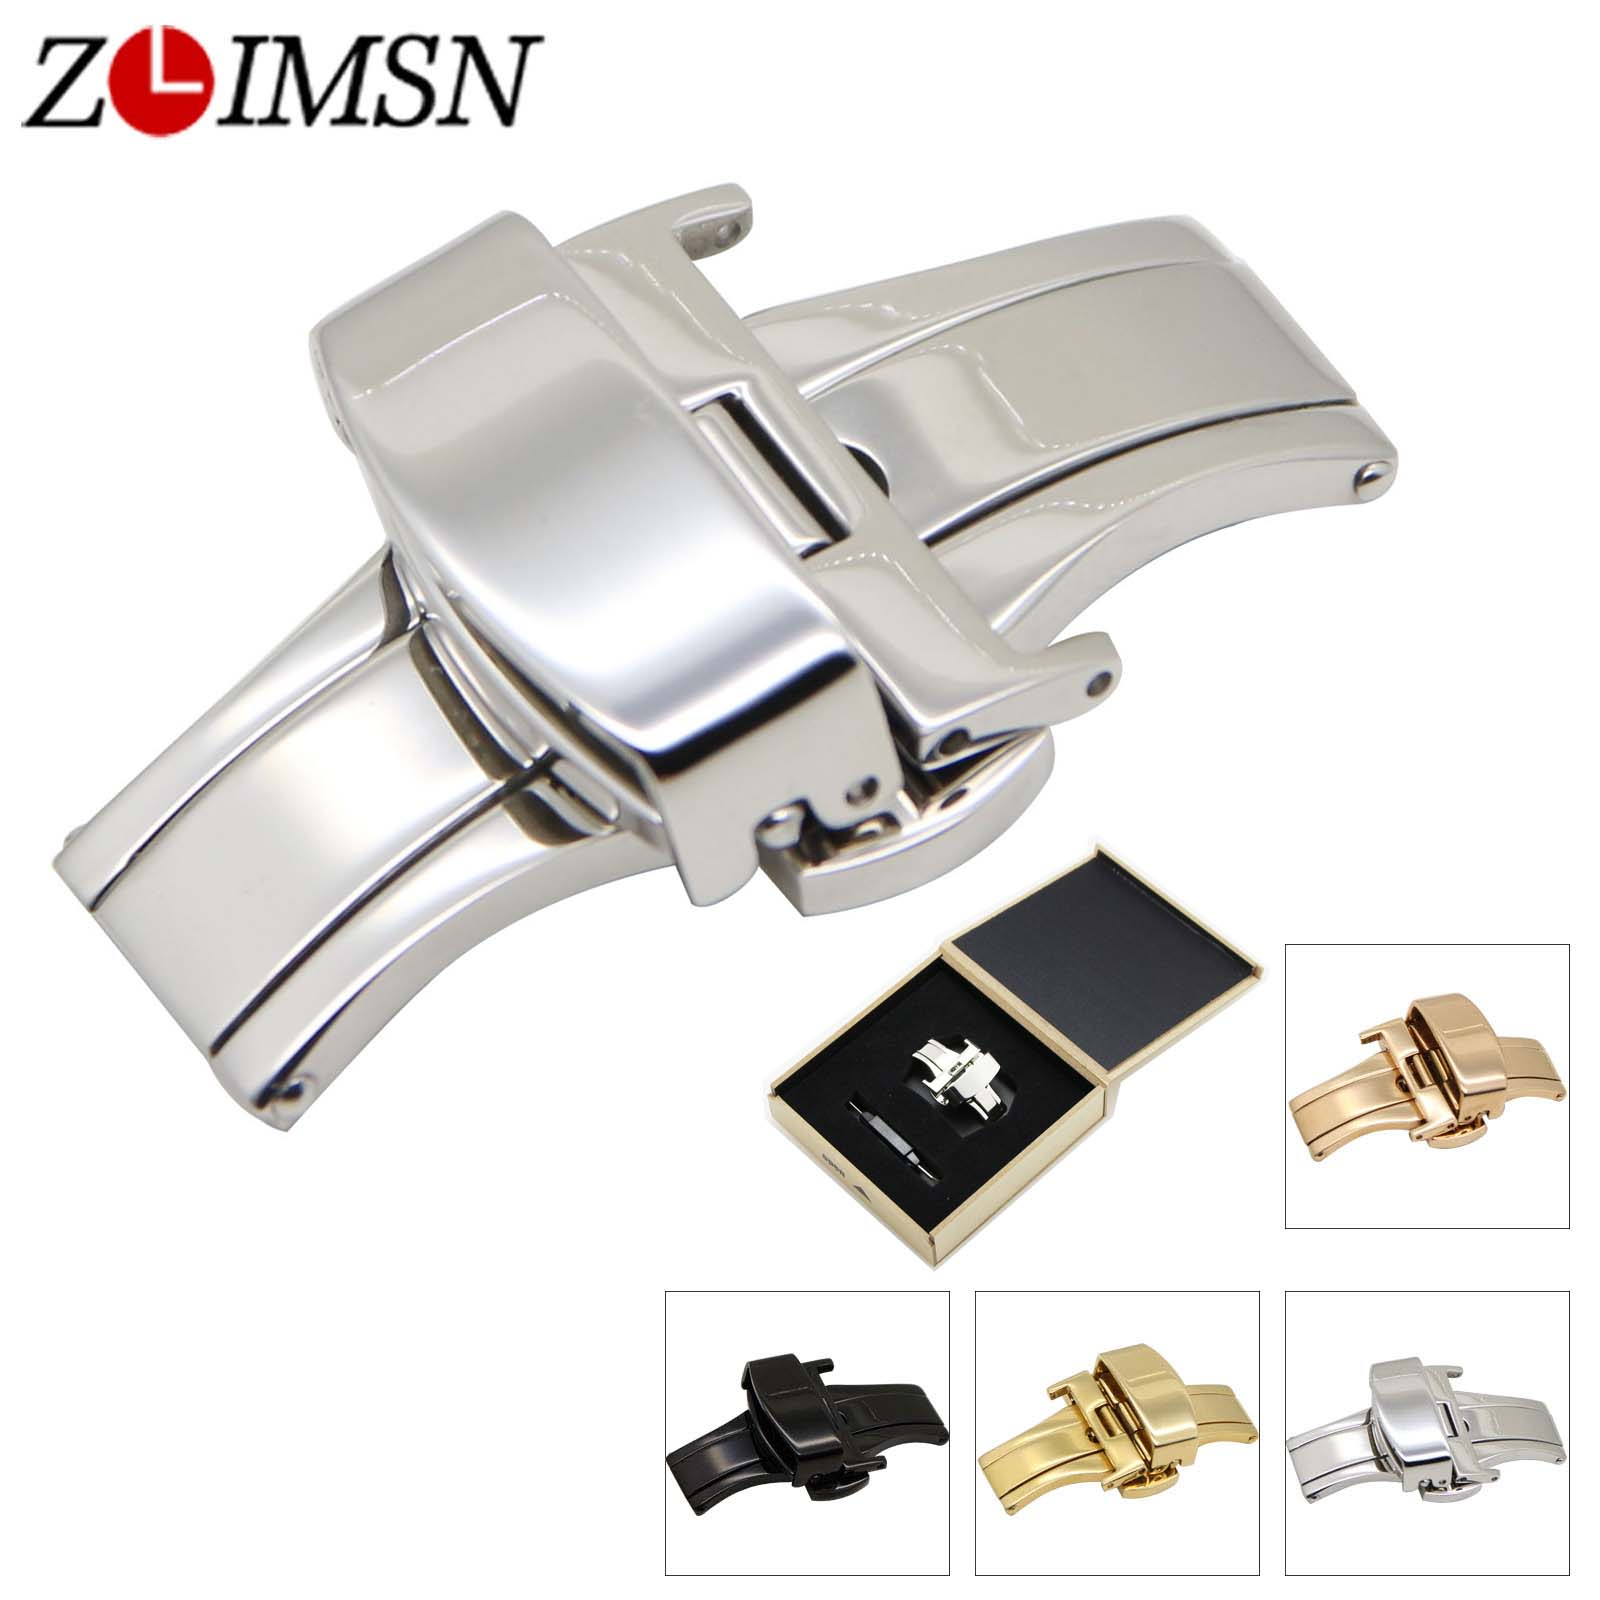 где купить ZLIMSN 12~22mm Butterfly Buckle Polished Brushed Stainless Steel Clasp for Leather Watch Bands Belt Silver Black Rose Gold Color по лучшей цене